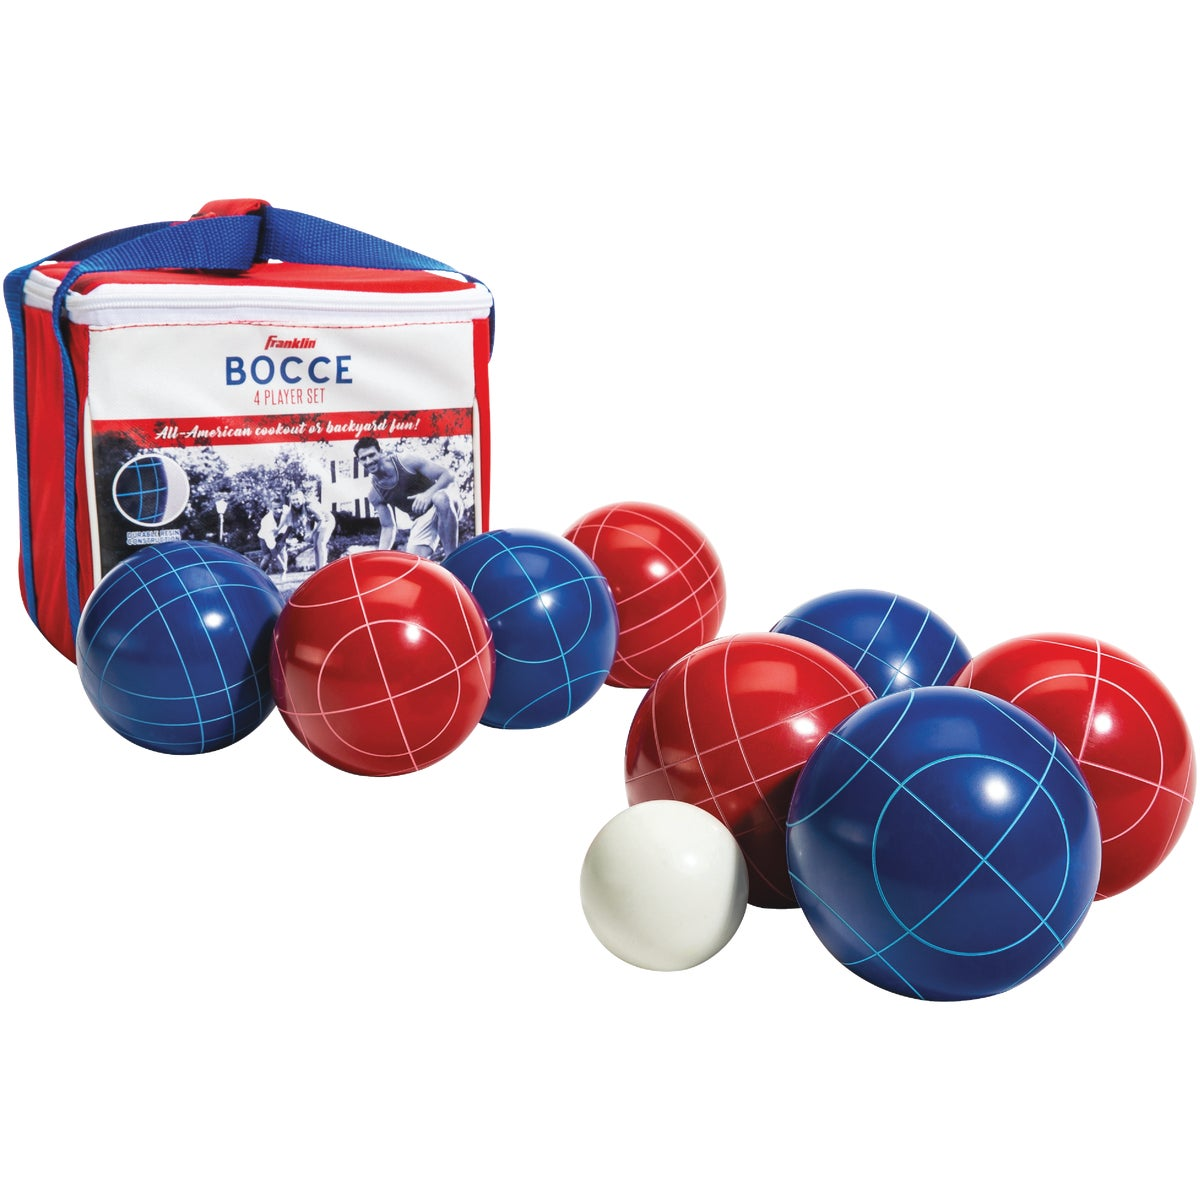 BOCCE BALL SET - 3712/02 by Franklin Sports